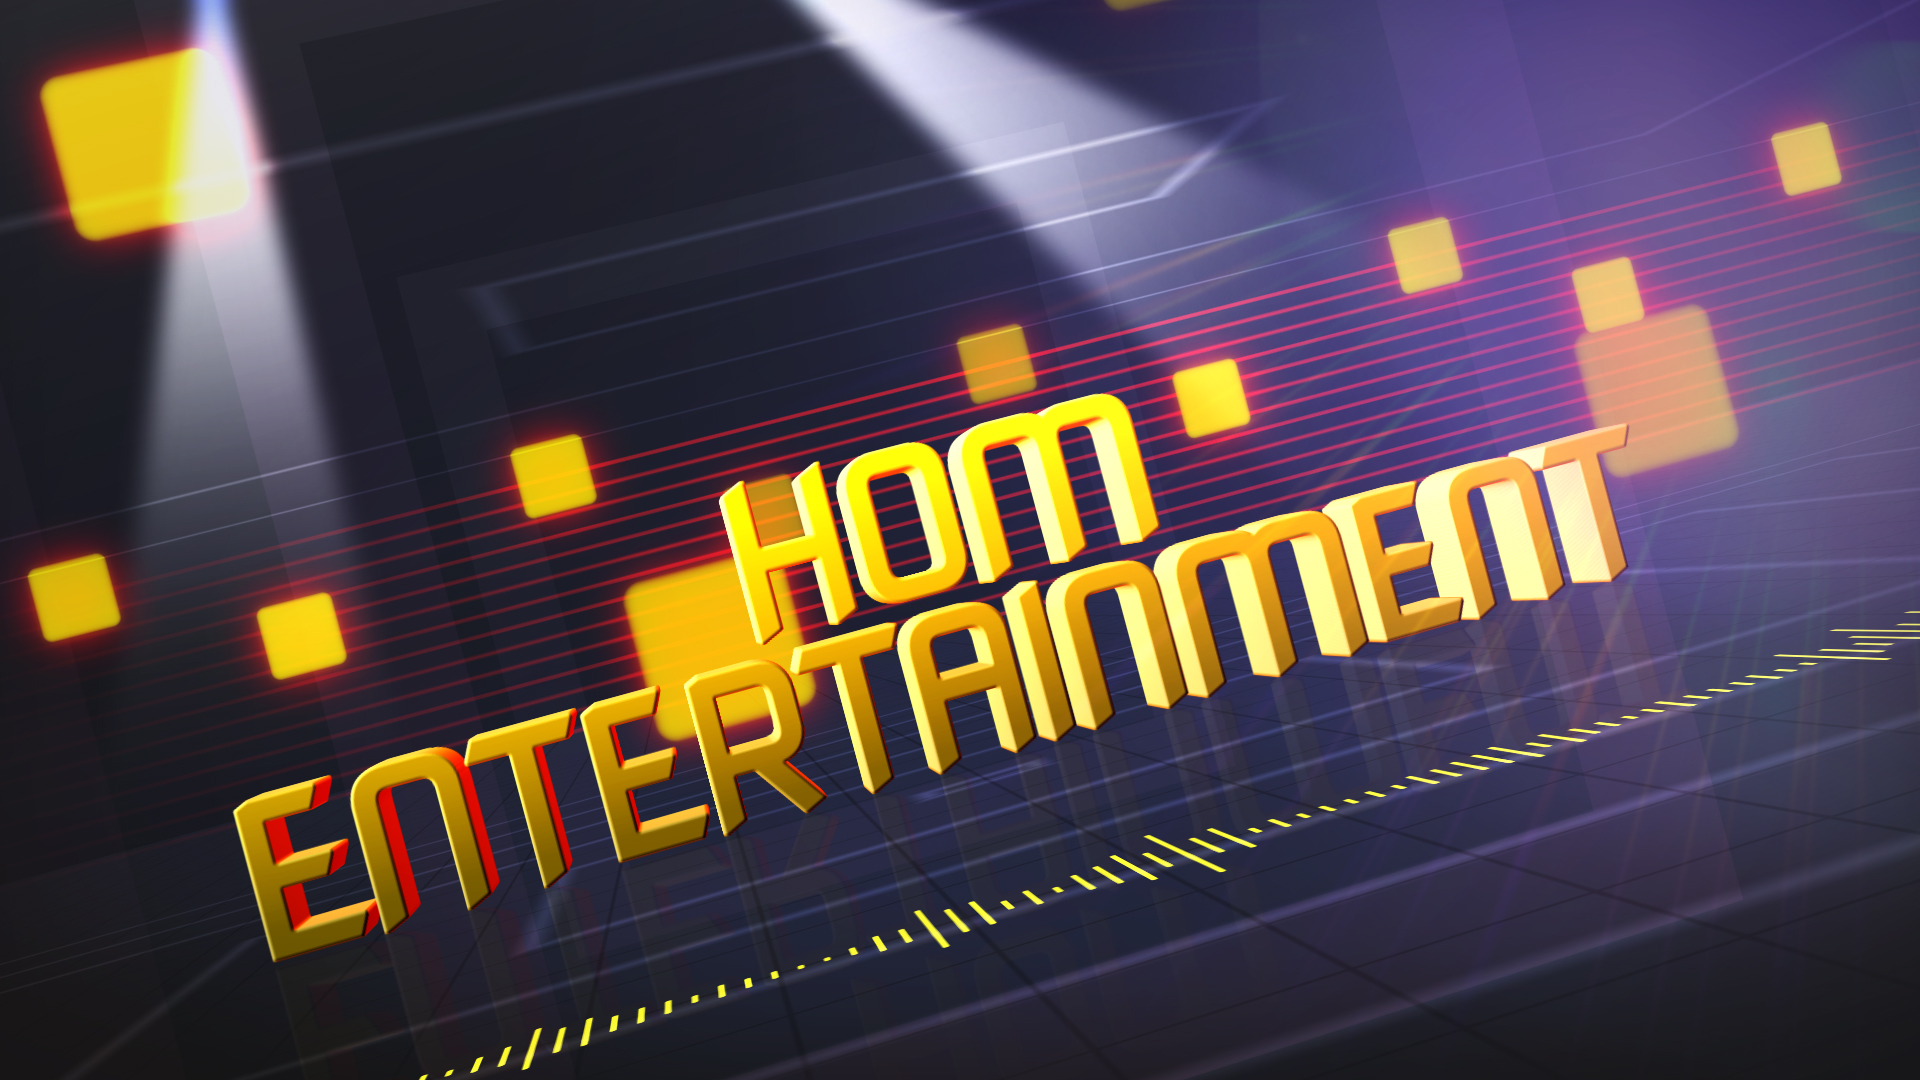 HOM Entertainment